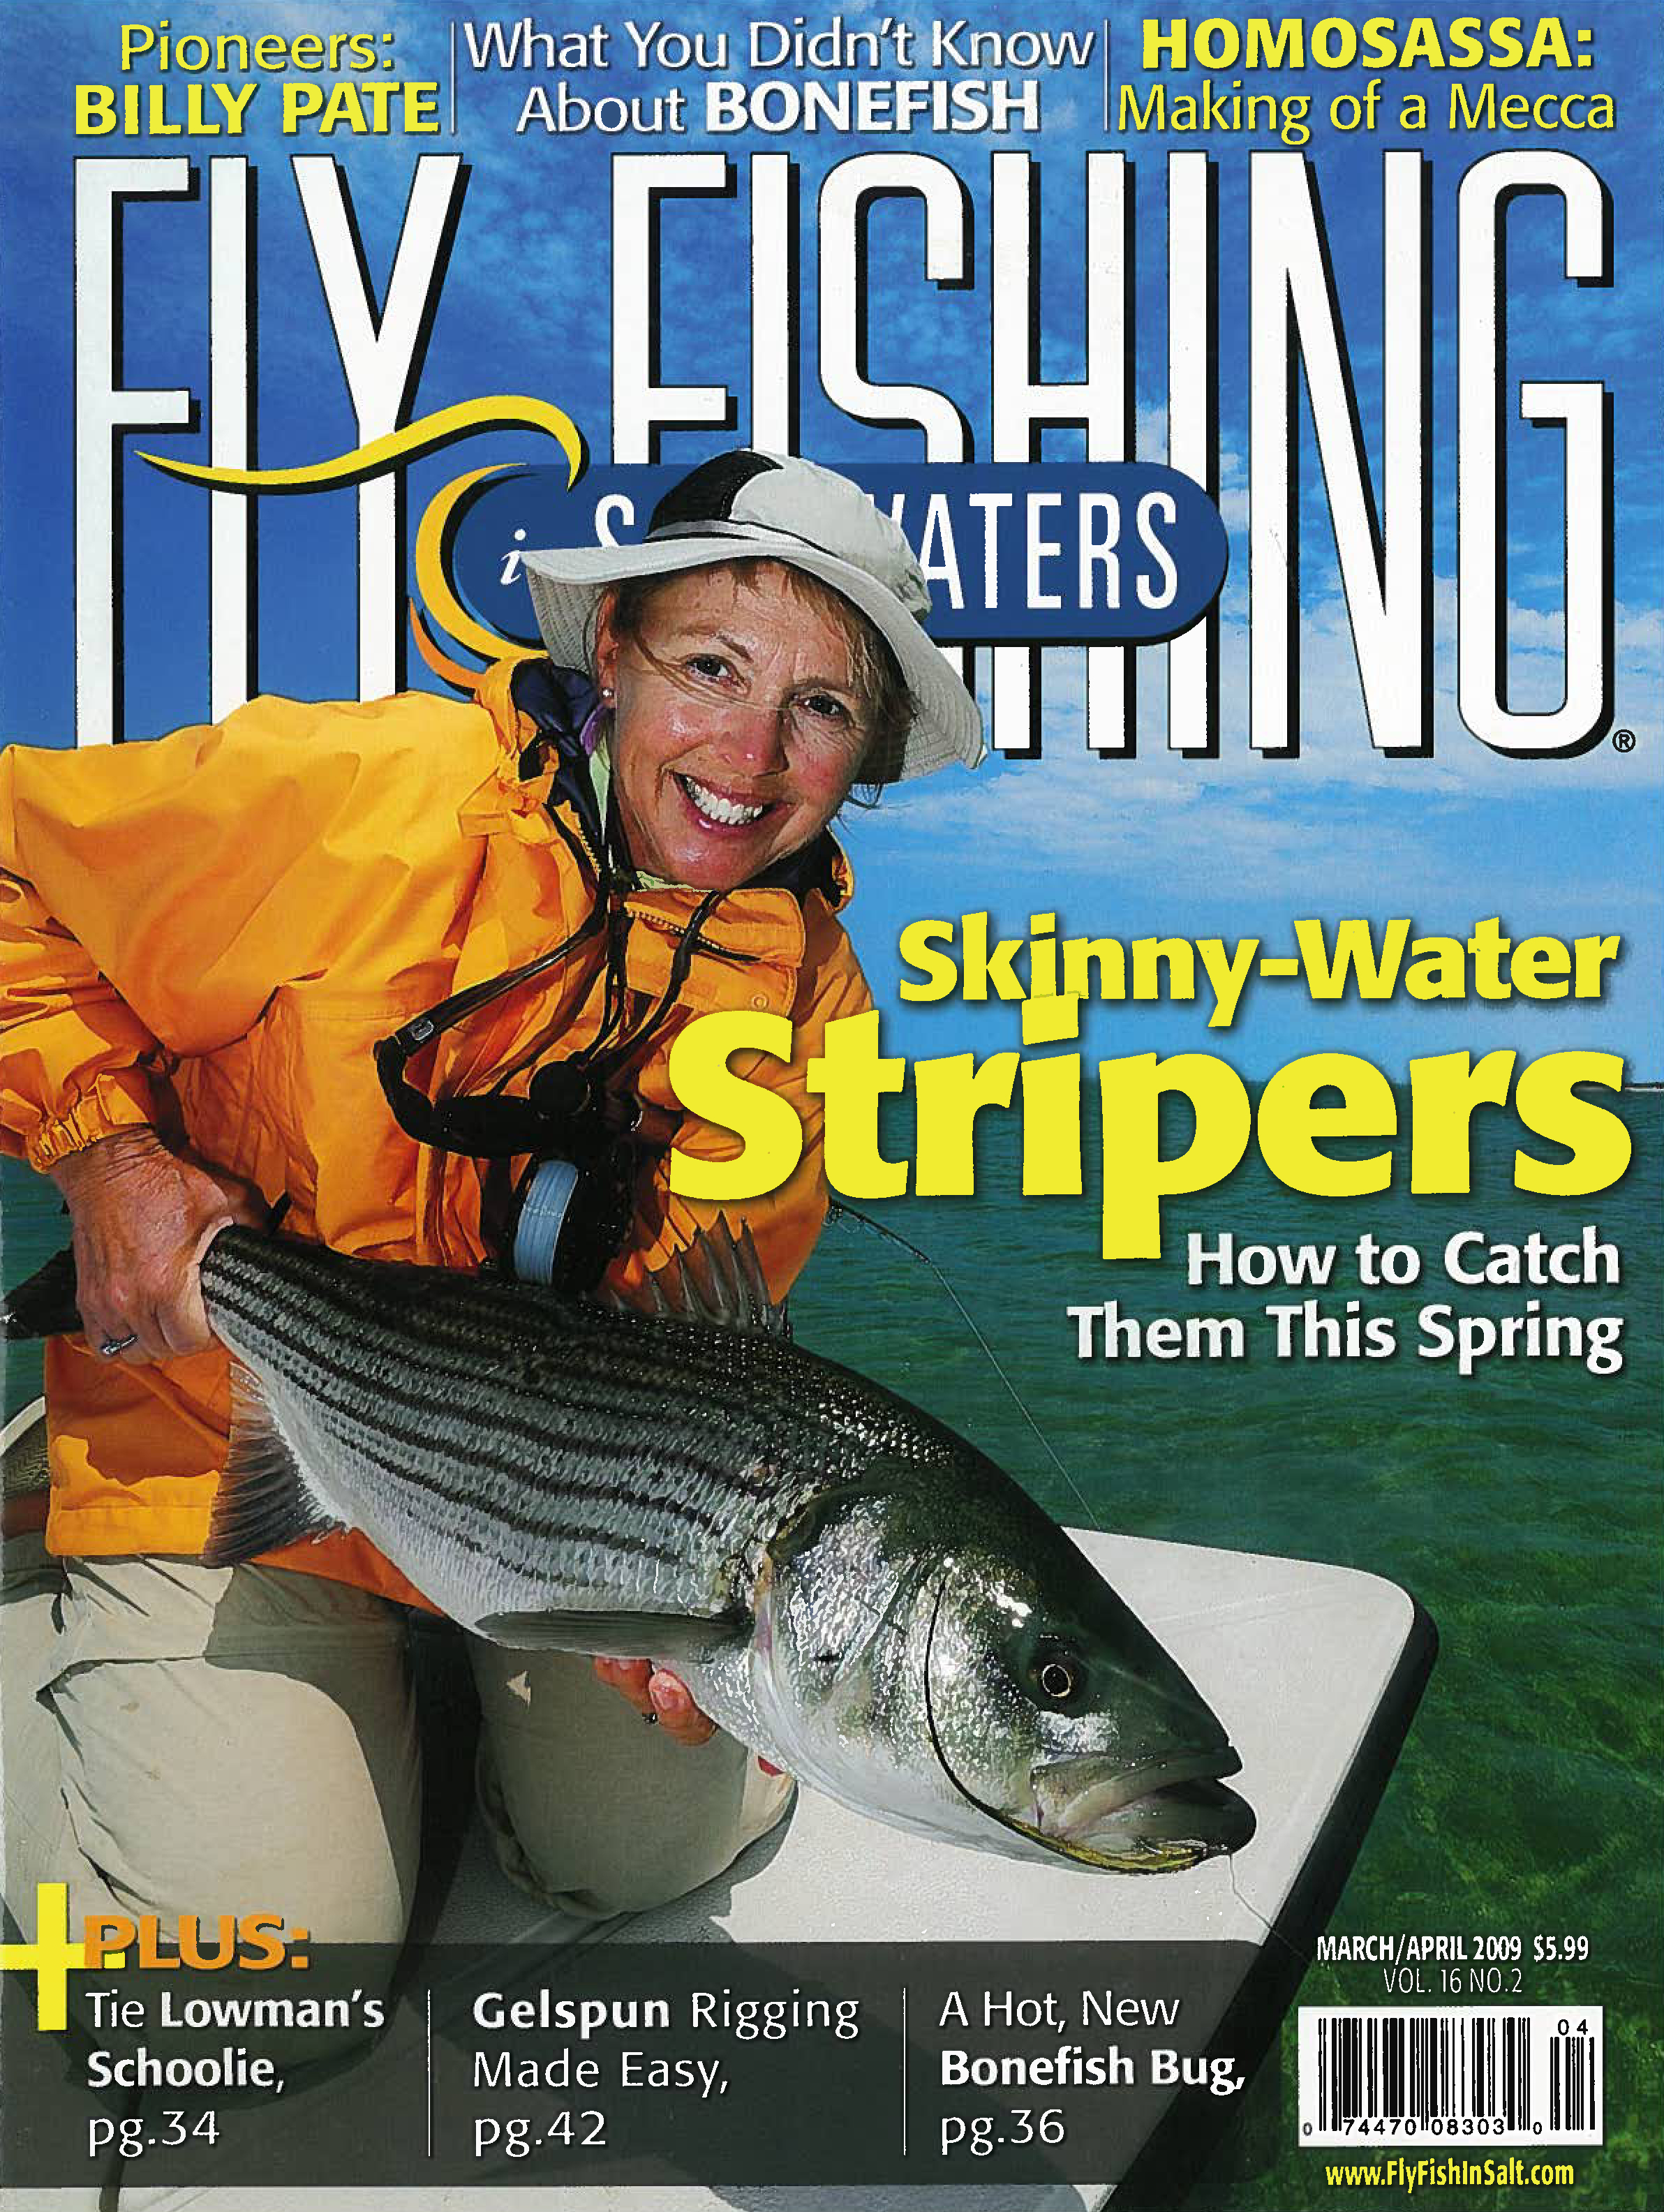 march-april 2009 cover.jpg